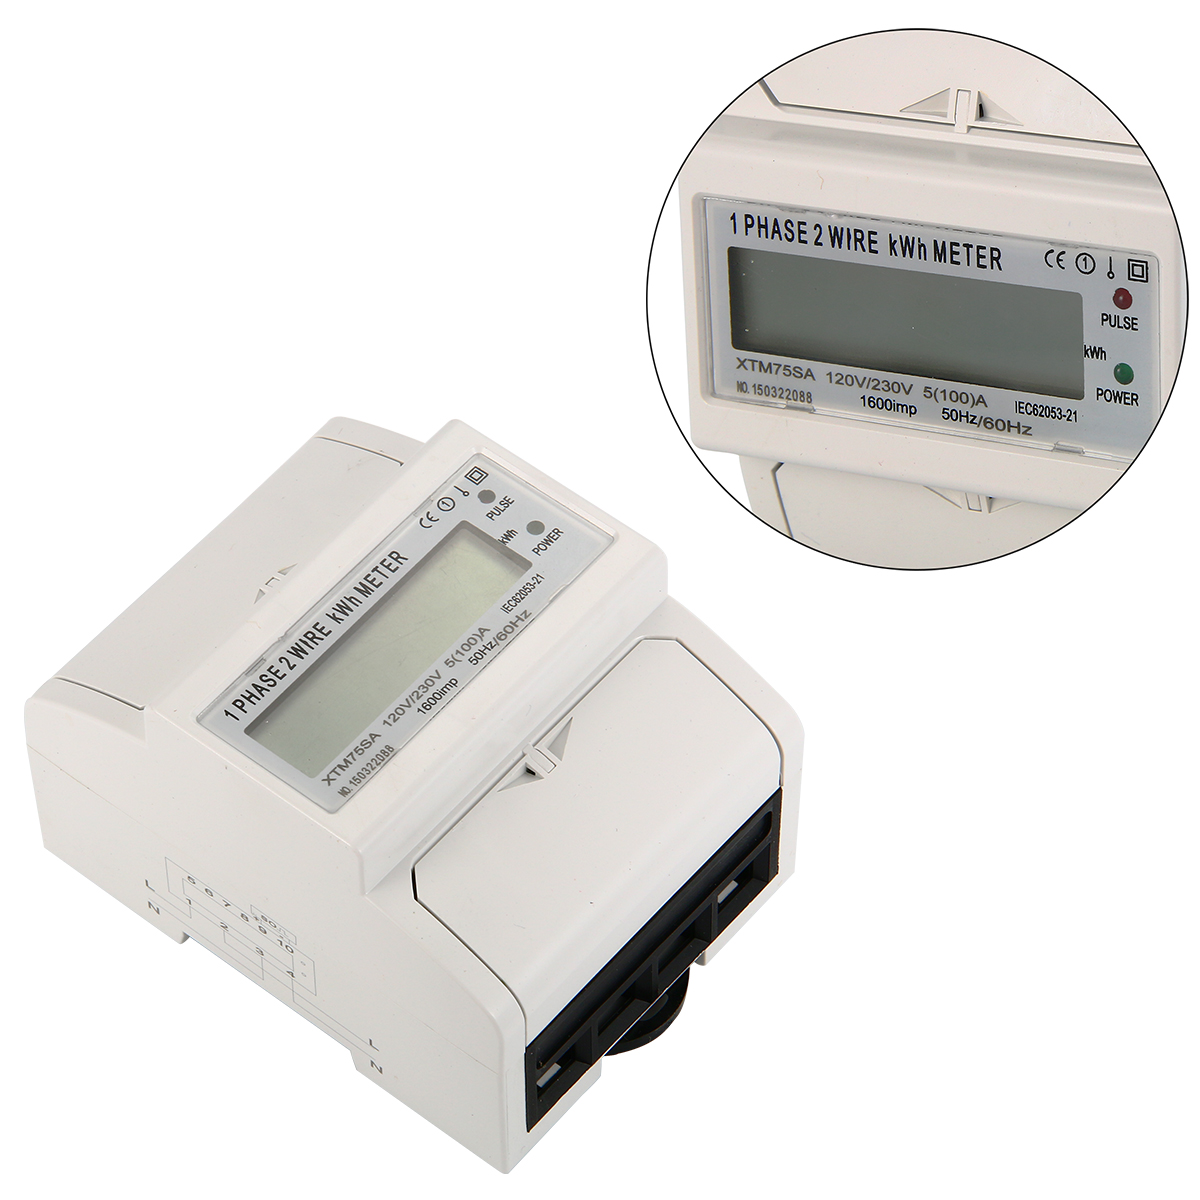 Ac Power Meter : A hz ac power meter so electricity kwh din rail